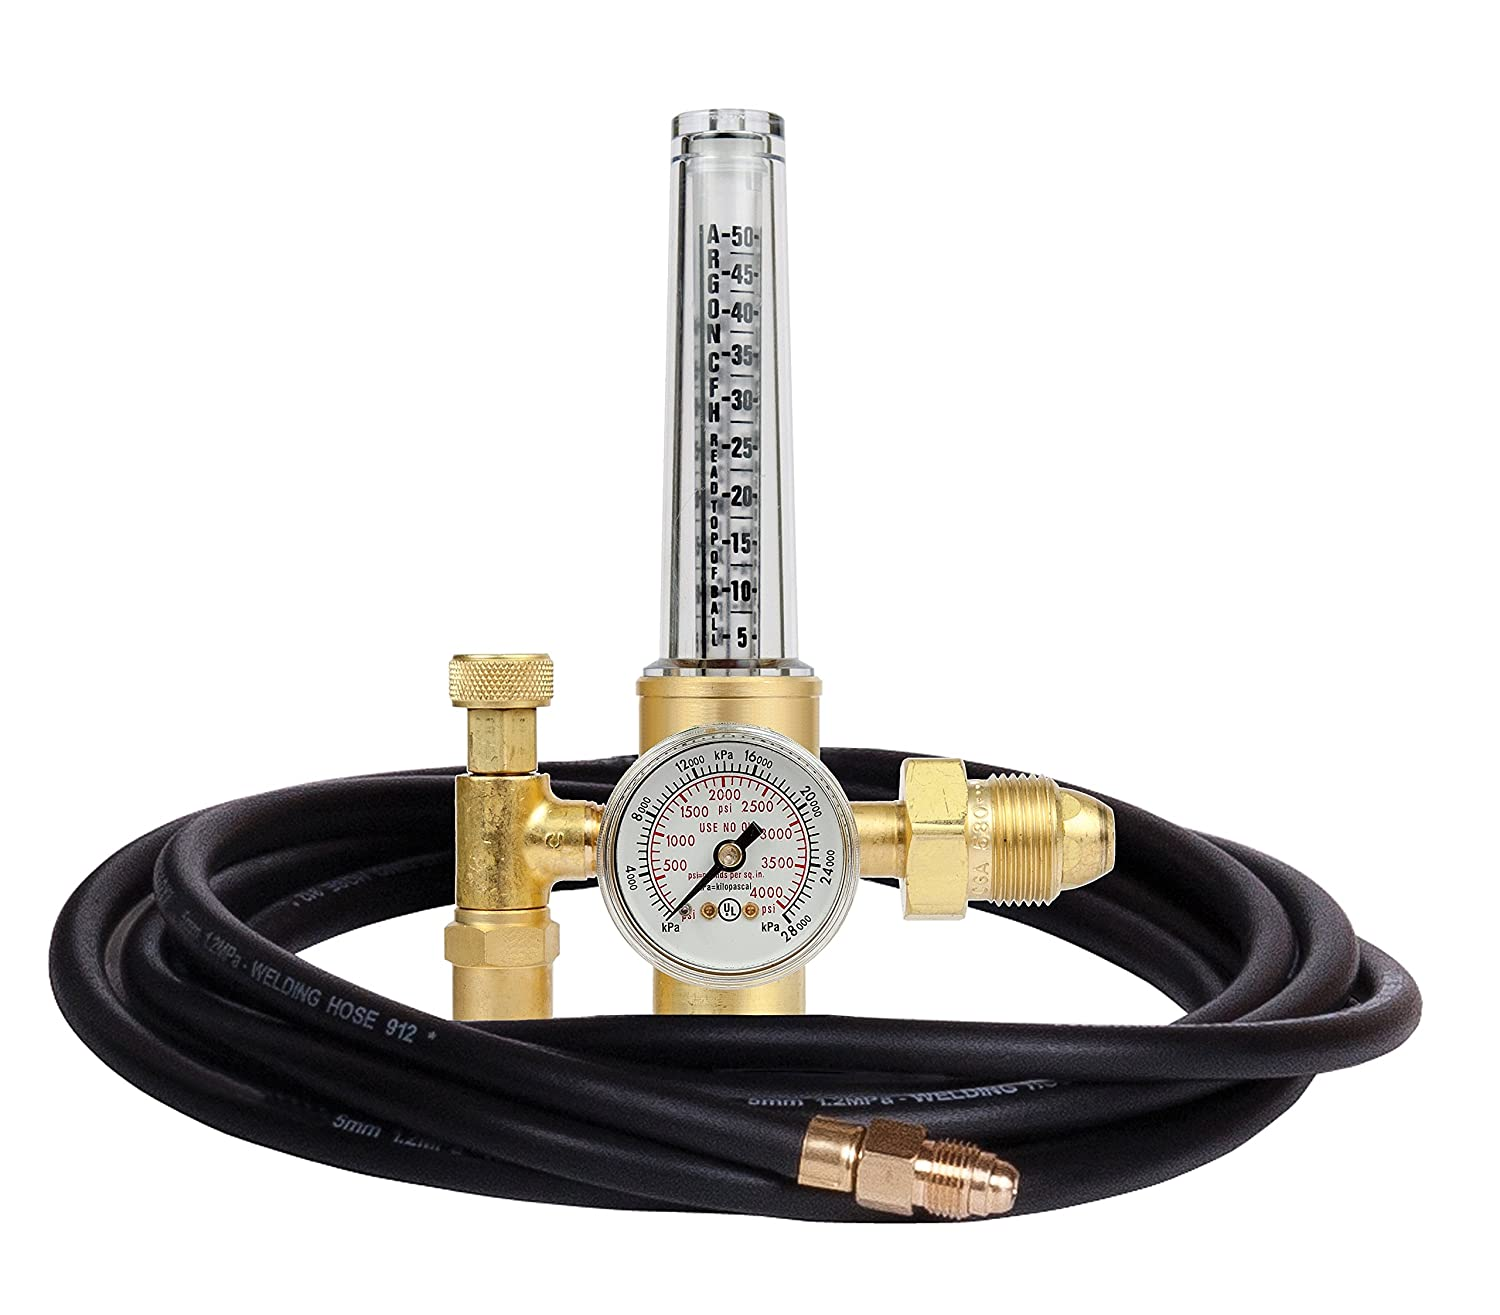 Victor Technologies 0781-2744 HRF-1480-580 Light Duty Flow Meter Cylinder Nitrogen/Argon/Helium Regulator with 10' Hose, 50-38 SCFH Flow Range, 80 psig Outlet Pressure